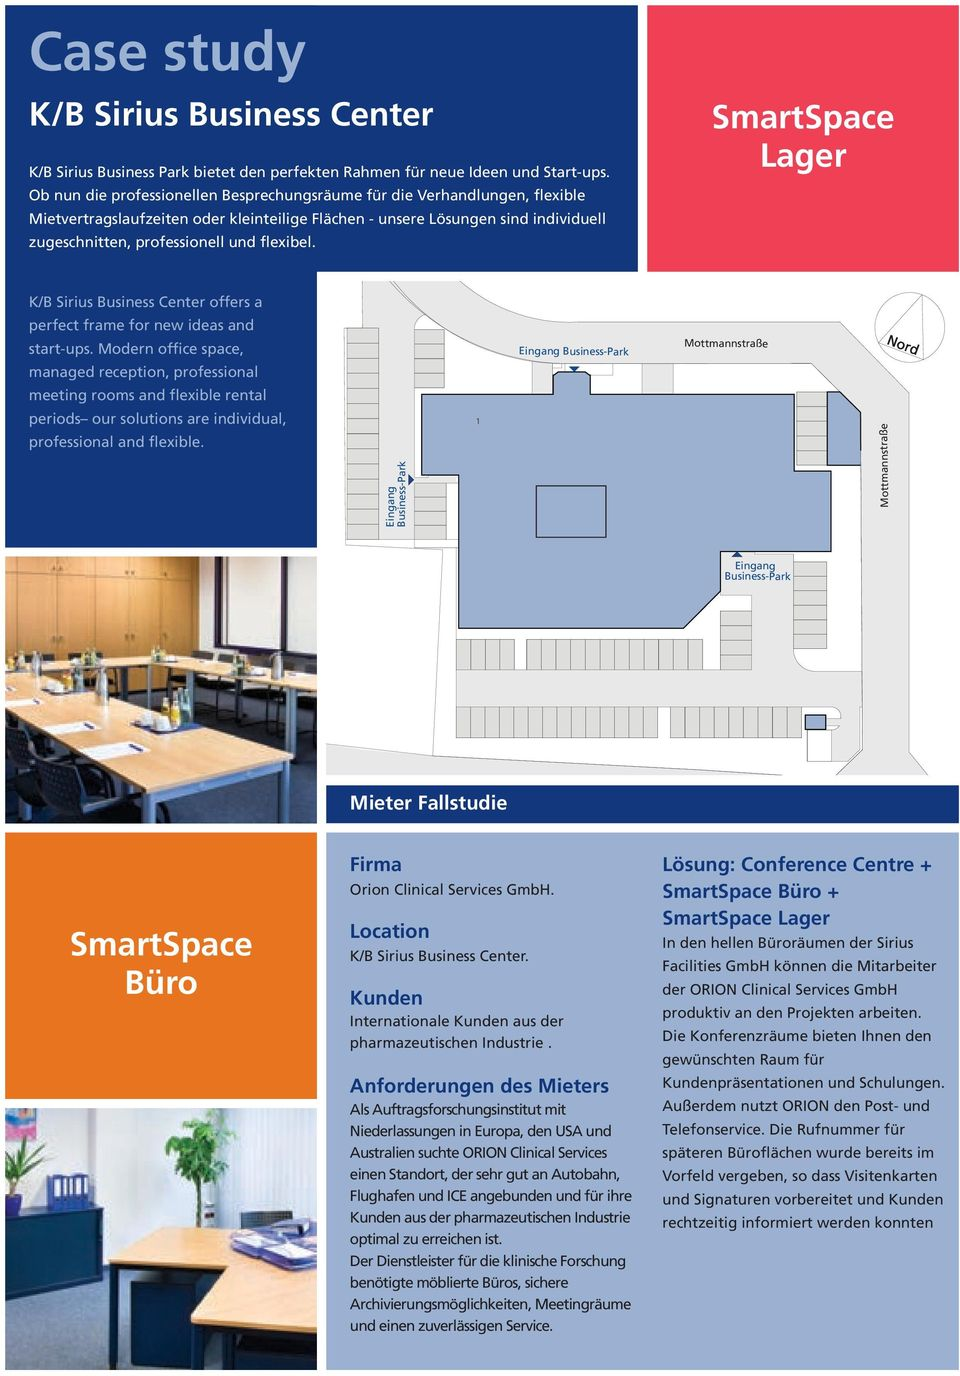 flexibel. SmartSpace Lager K/B Sirius Business Center offers a perfect frame for new ideas and start-ups.